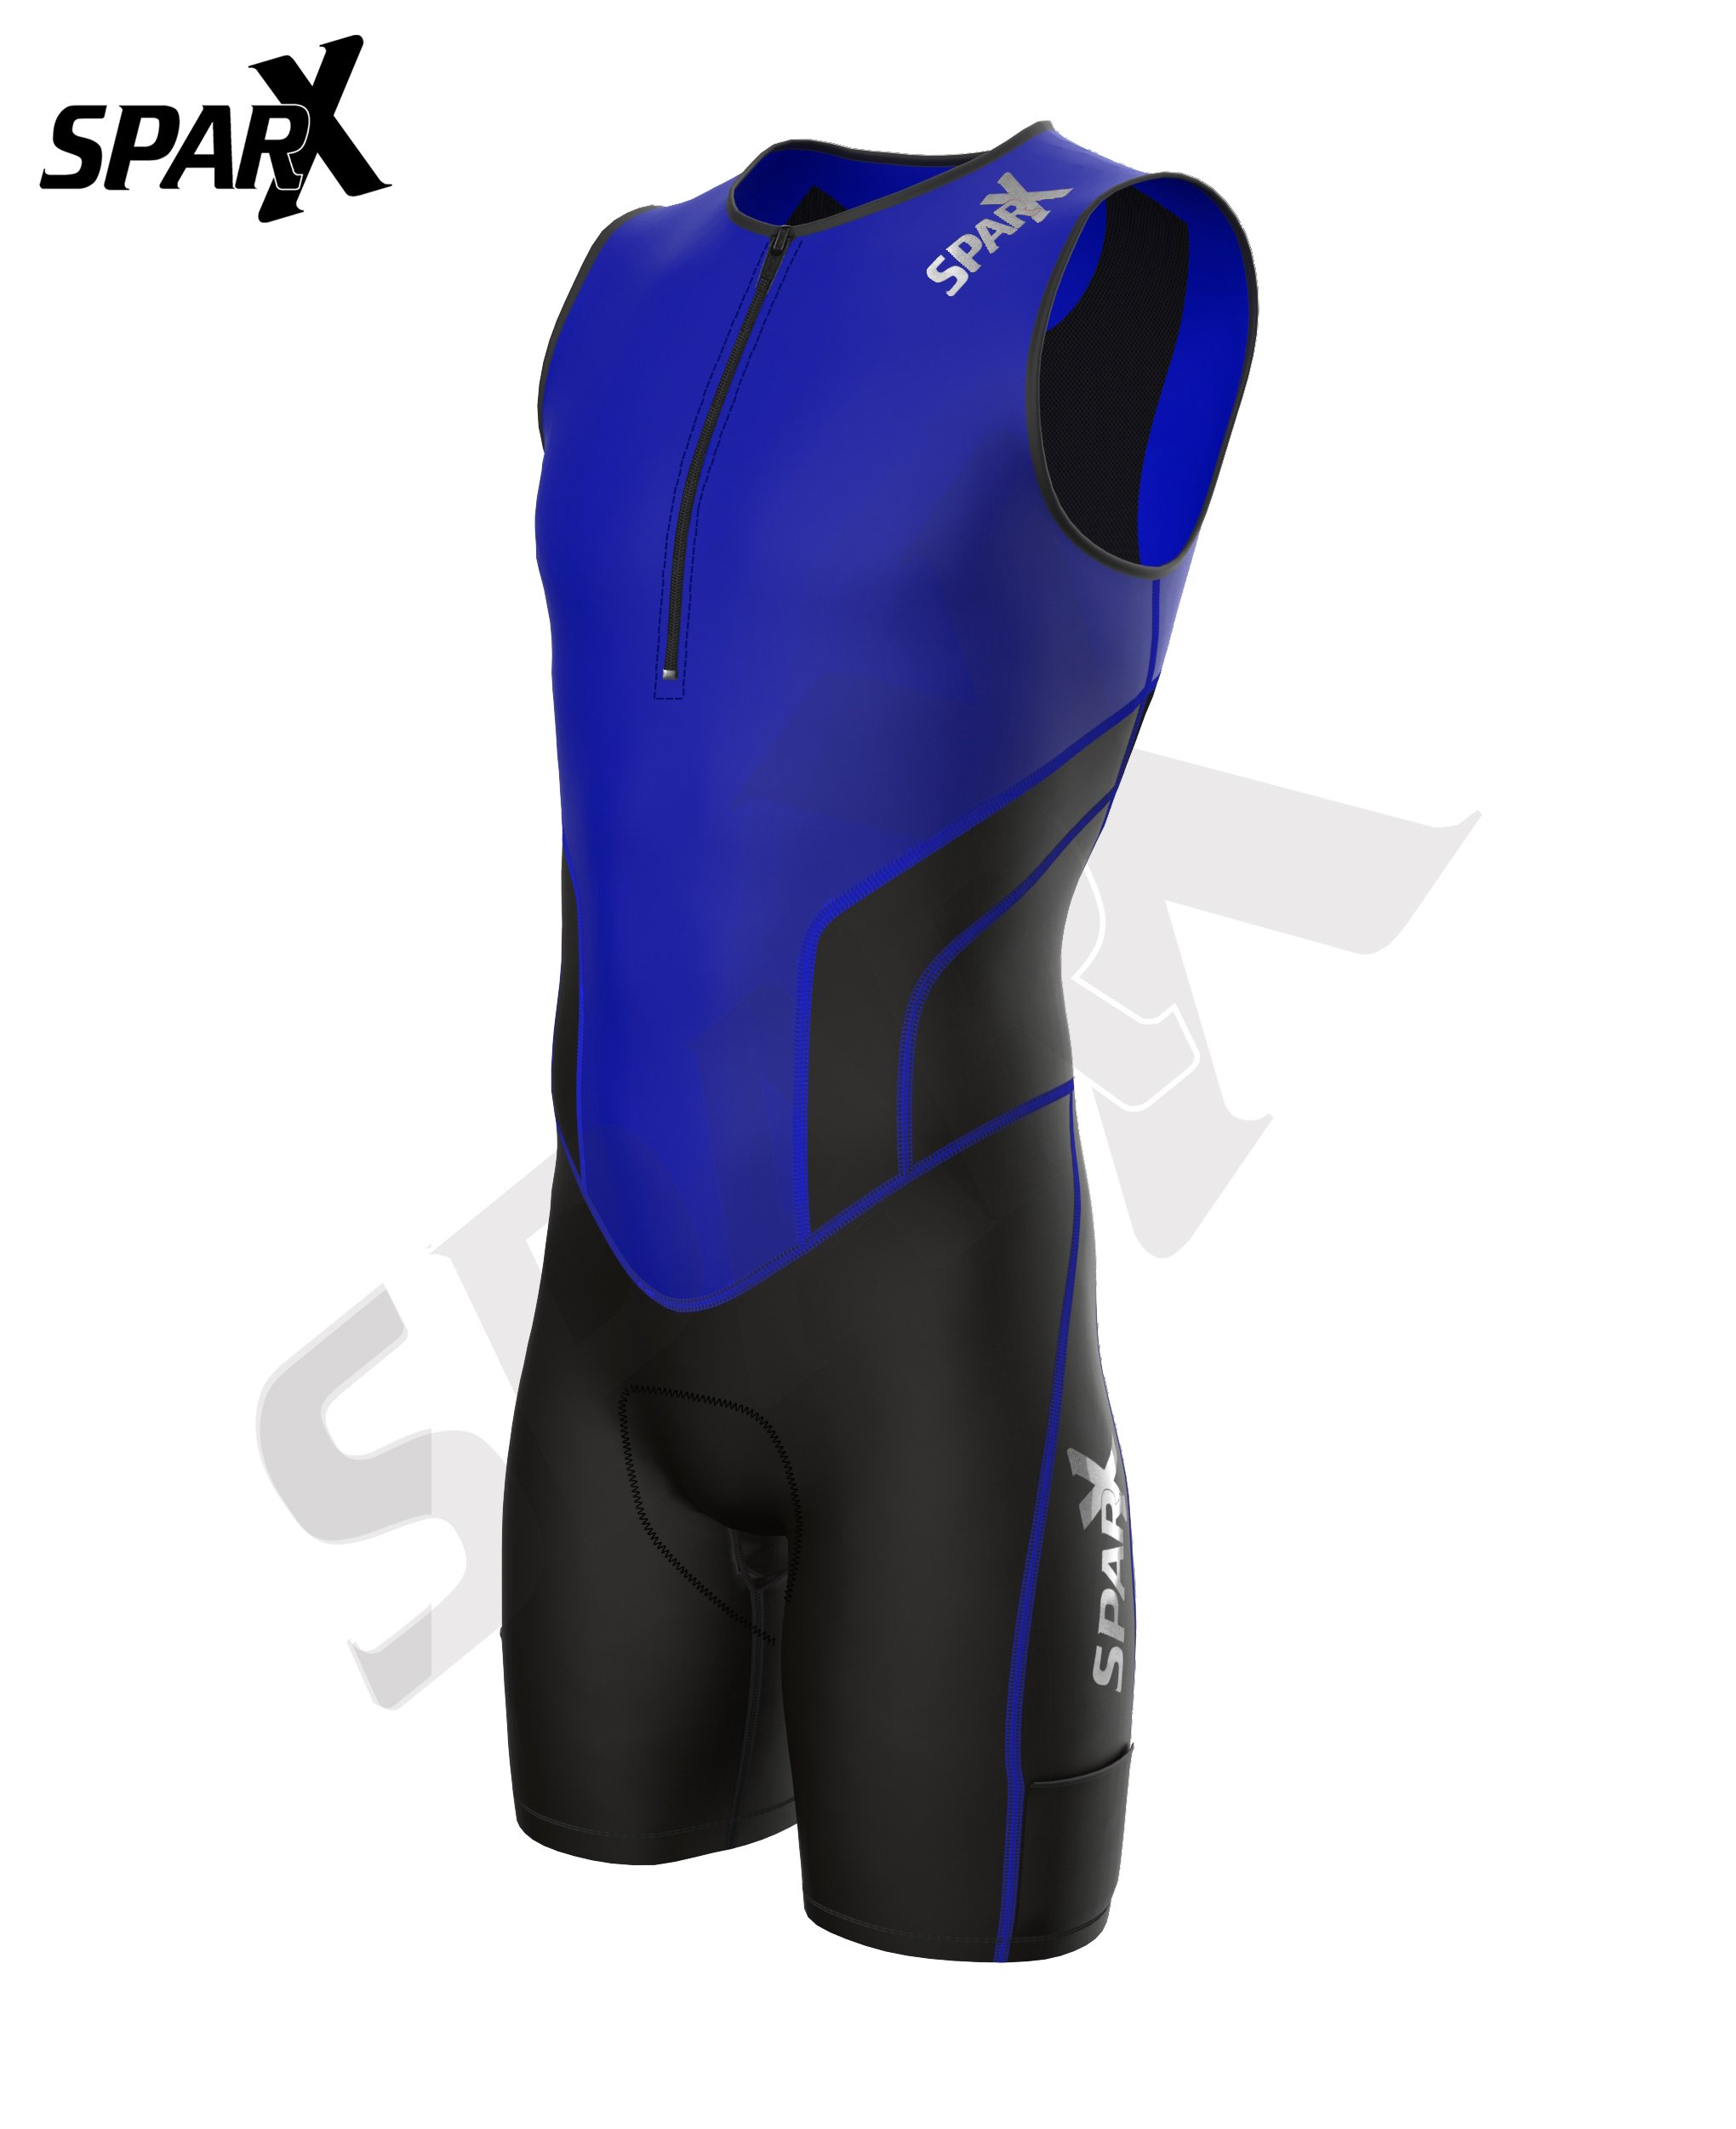 Sparx X Triathlon Suit Racing Tri Cycling Skin Suit Bike Swim Run (Blue, Large) by Sparx Sports (Image #2)